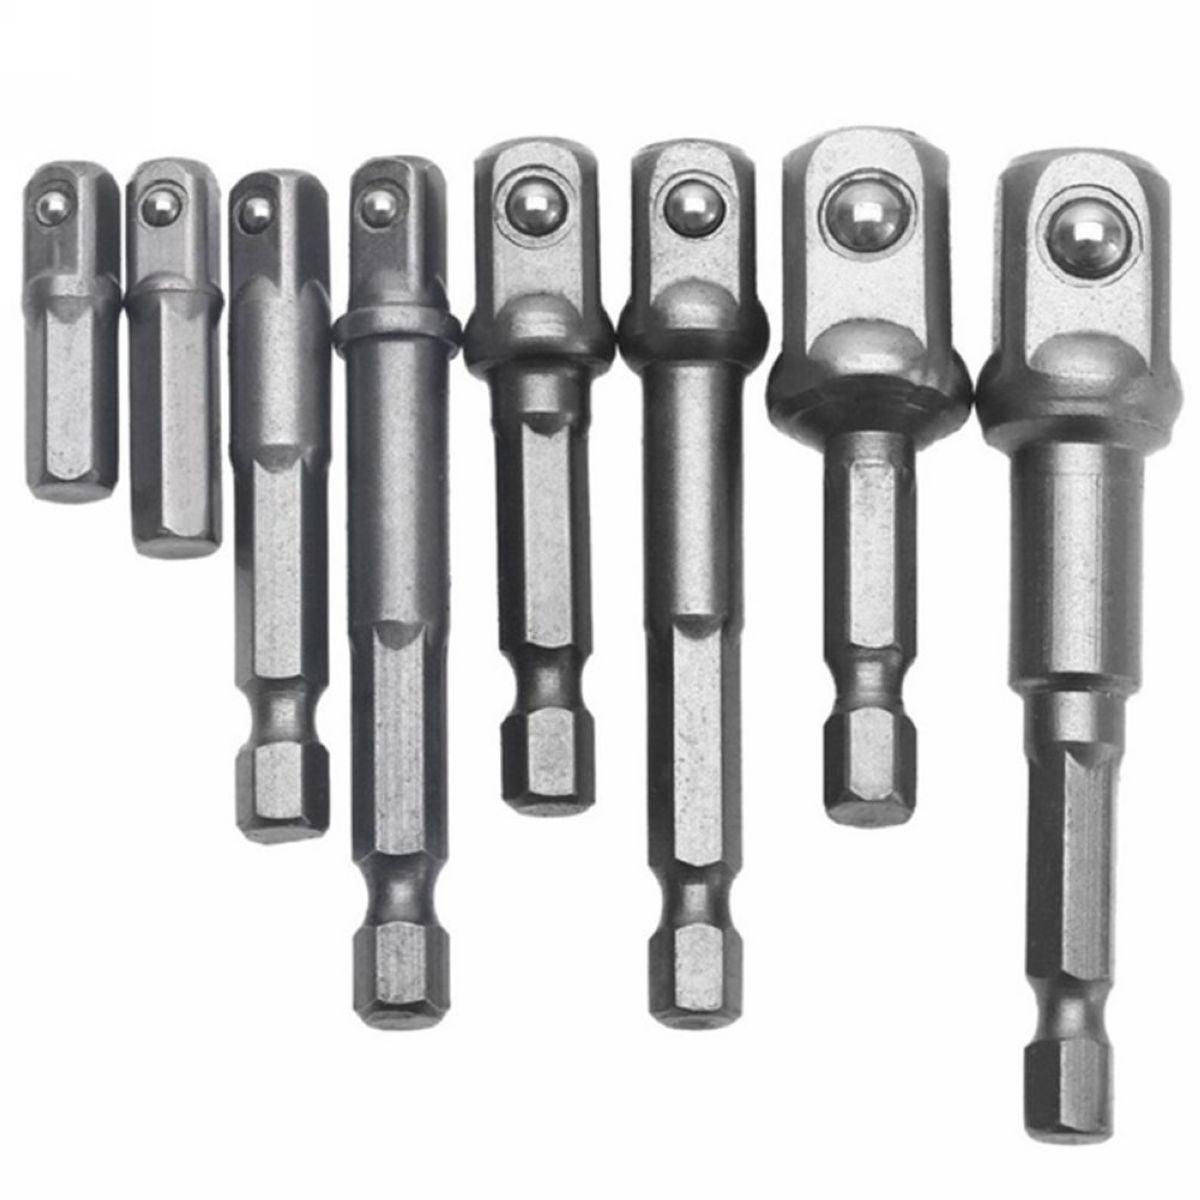 8pcs/set Socket Bits Adapter Set Hex Drill Nut Driver Power Shank 1/4 3/8 1/2 Connecting Rod Head Extension Drill Bits Mayitr new 50mm wall hole saw drill bit set 200mm connecting rod with wrench mayitr for concrete cement stone